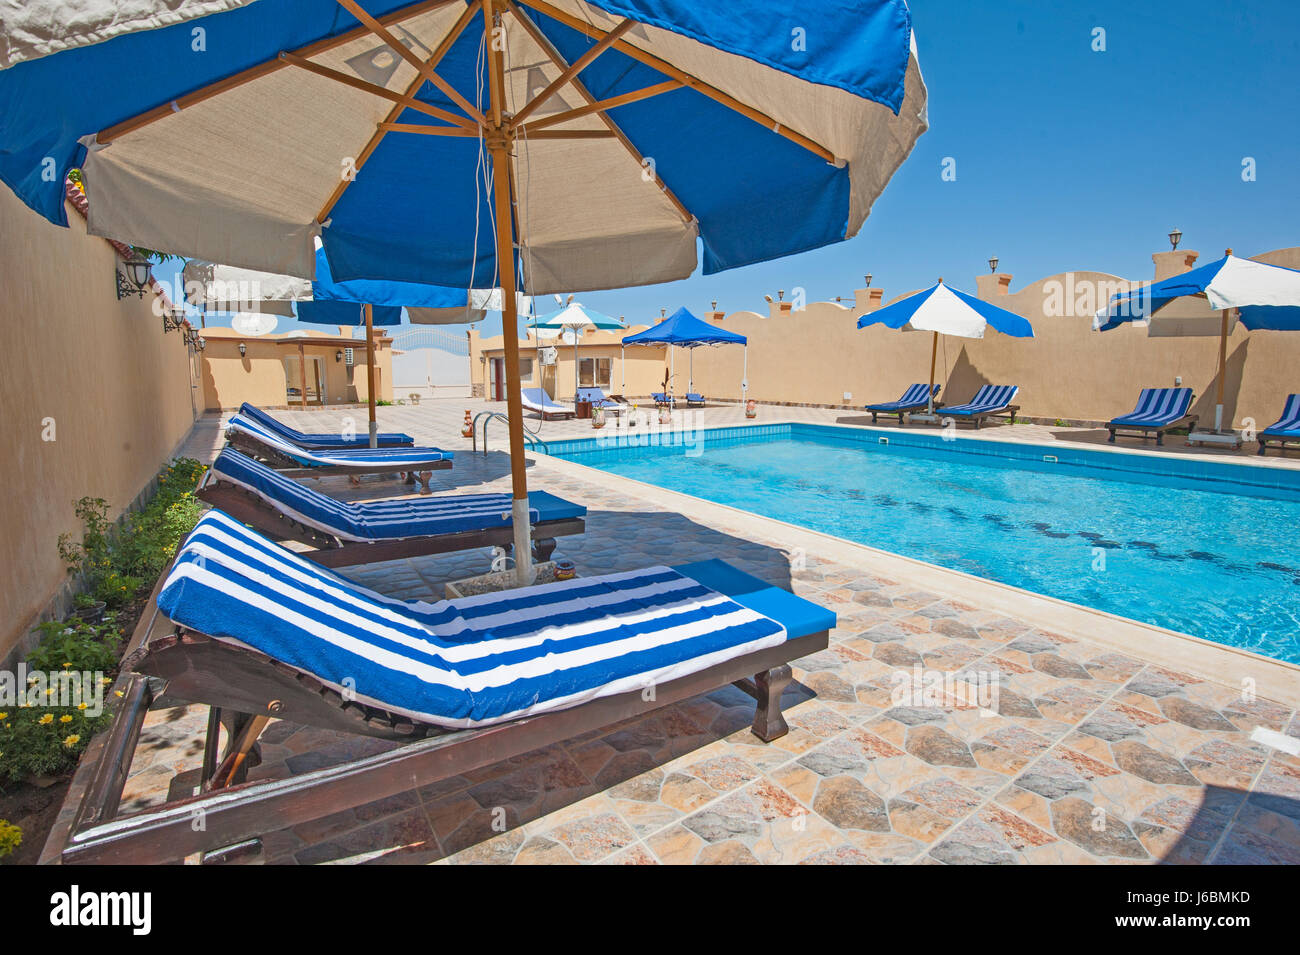 Bagni Scogliera Nervi Large Swimming Pool Deck In Stock Photos And Large Swimming